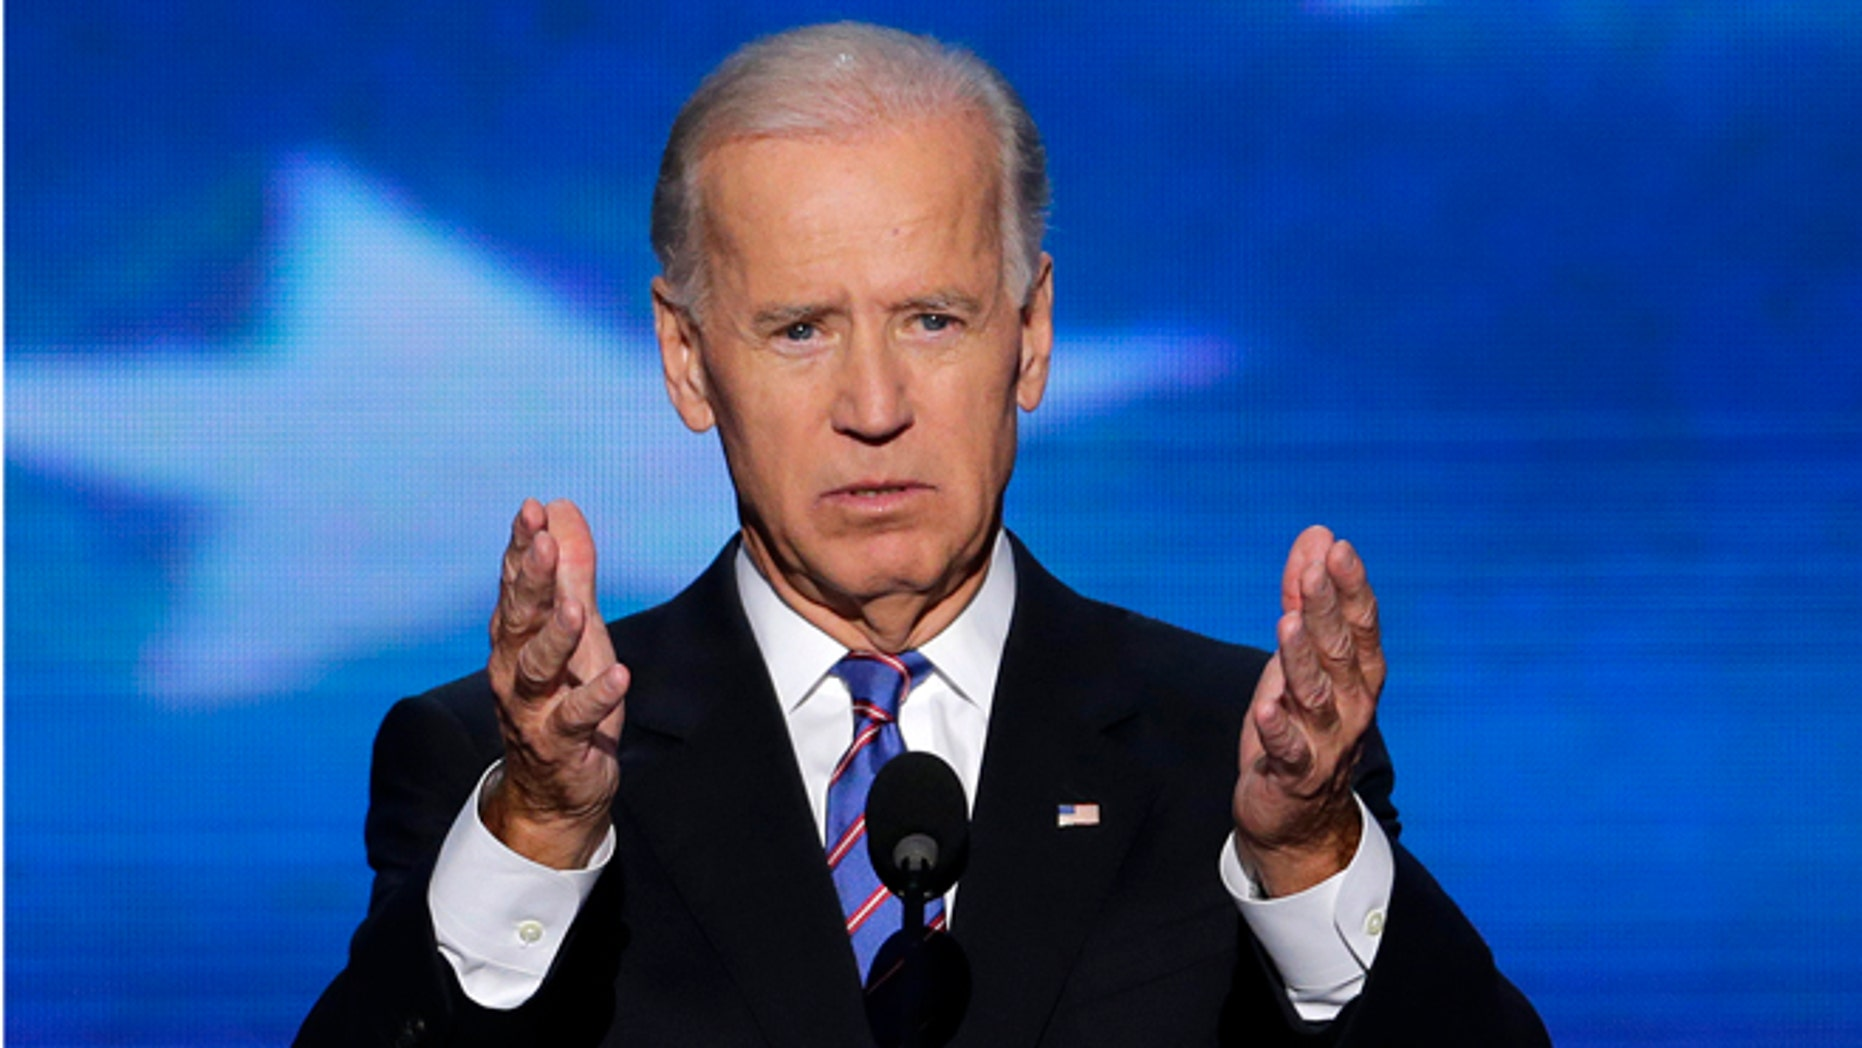 Sept. 6, 2012: Vice President Joe Biden addresses the Democratic National Convention in Charlotte, N.C.